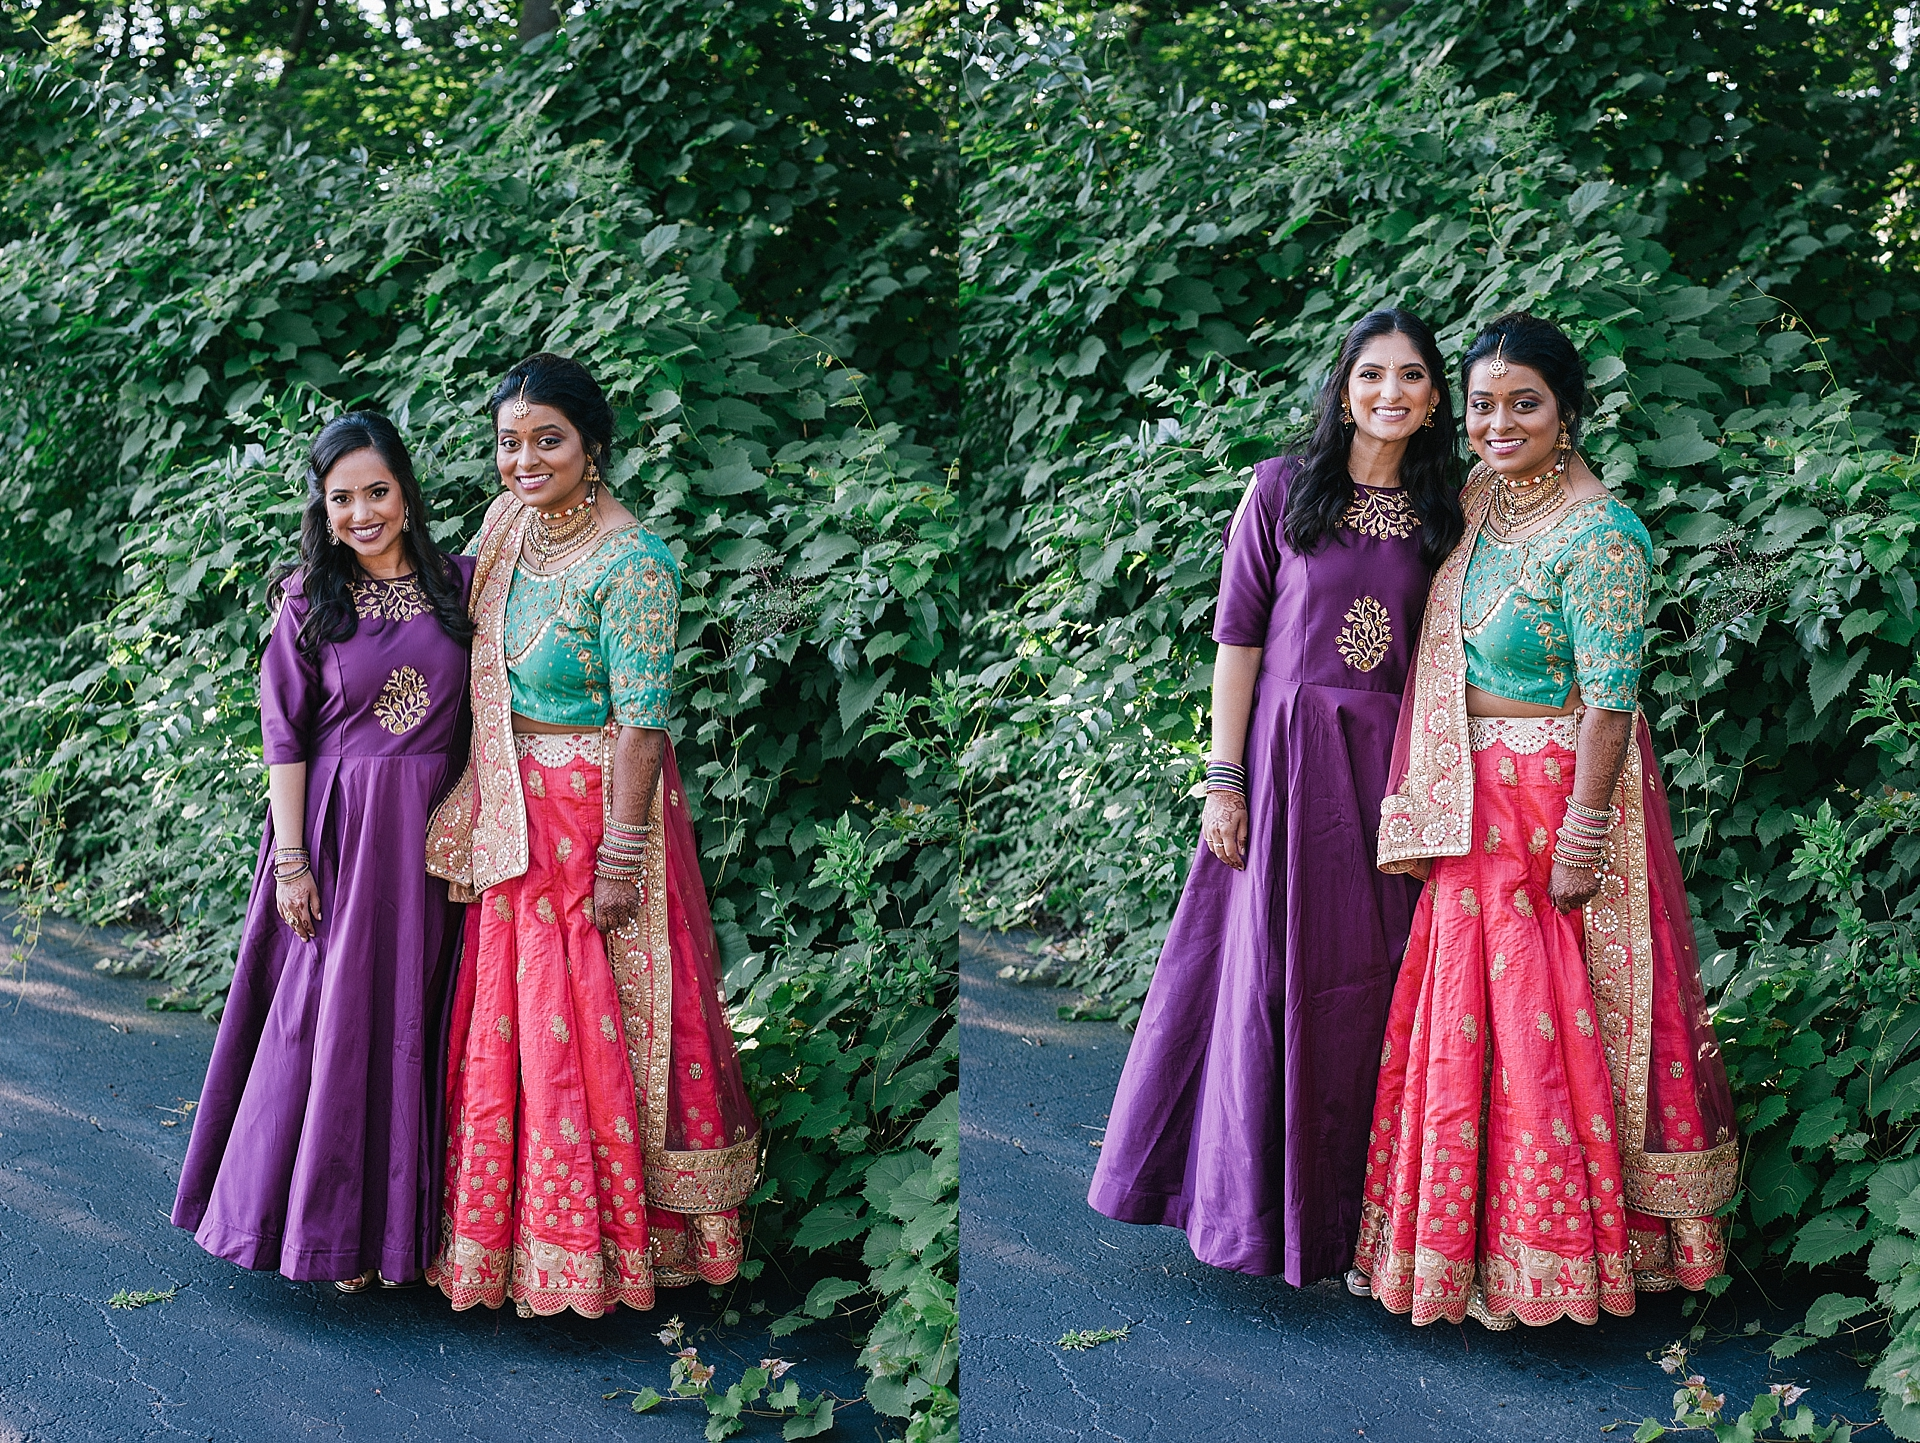 Prexa_Harry_Columbus_Crown_Plaza_Indian_Wedding0033.jpg